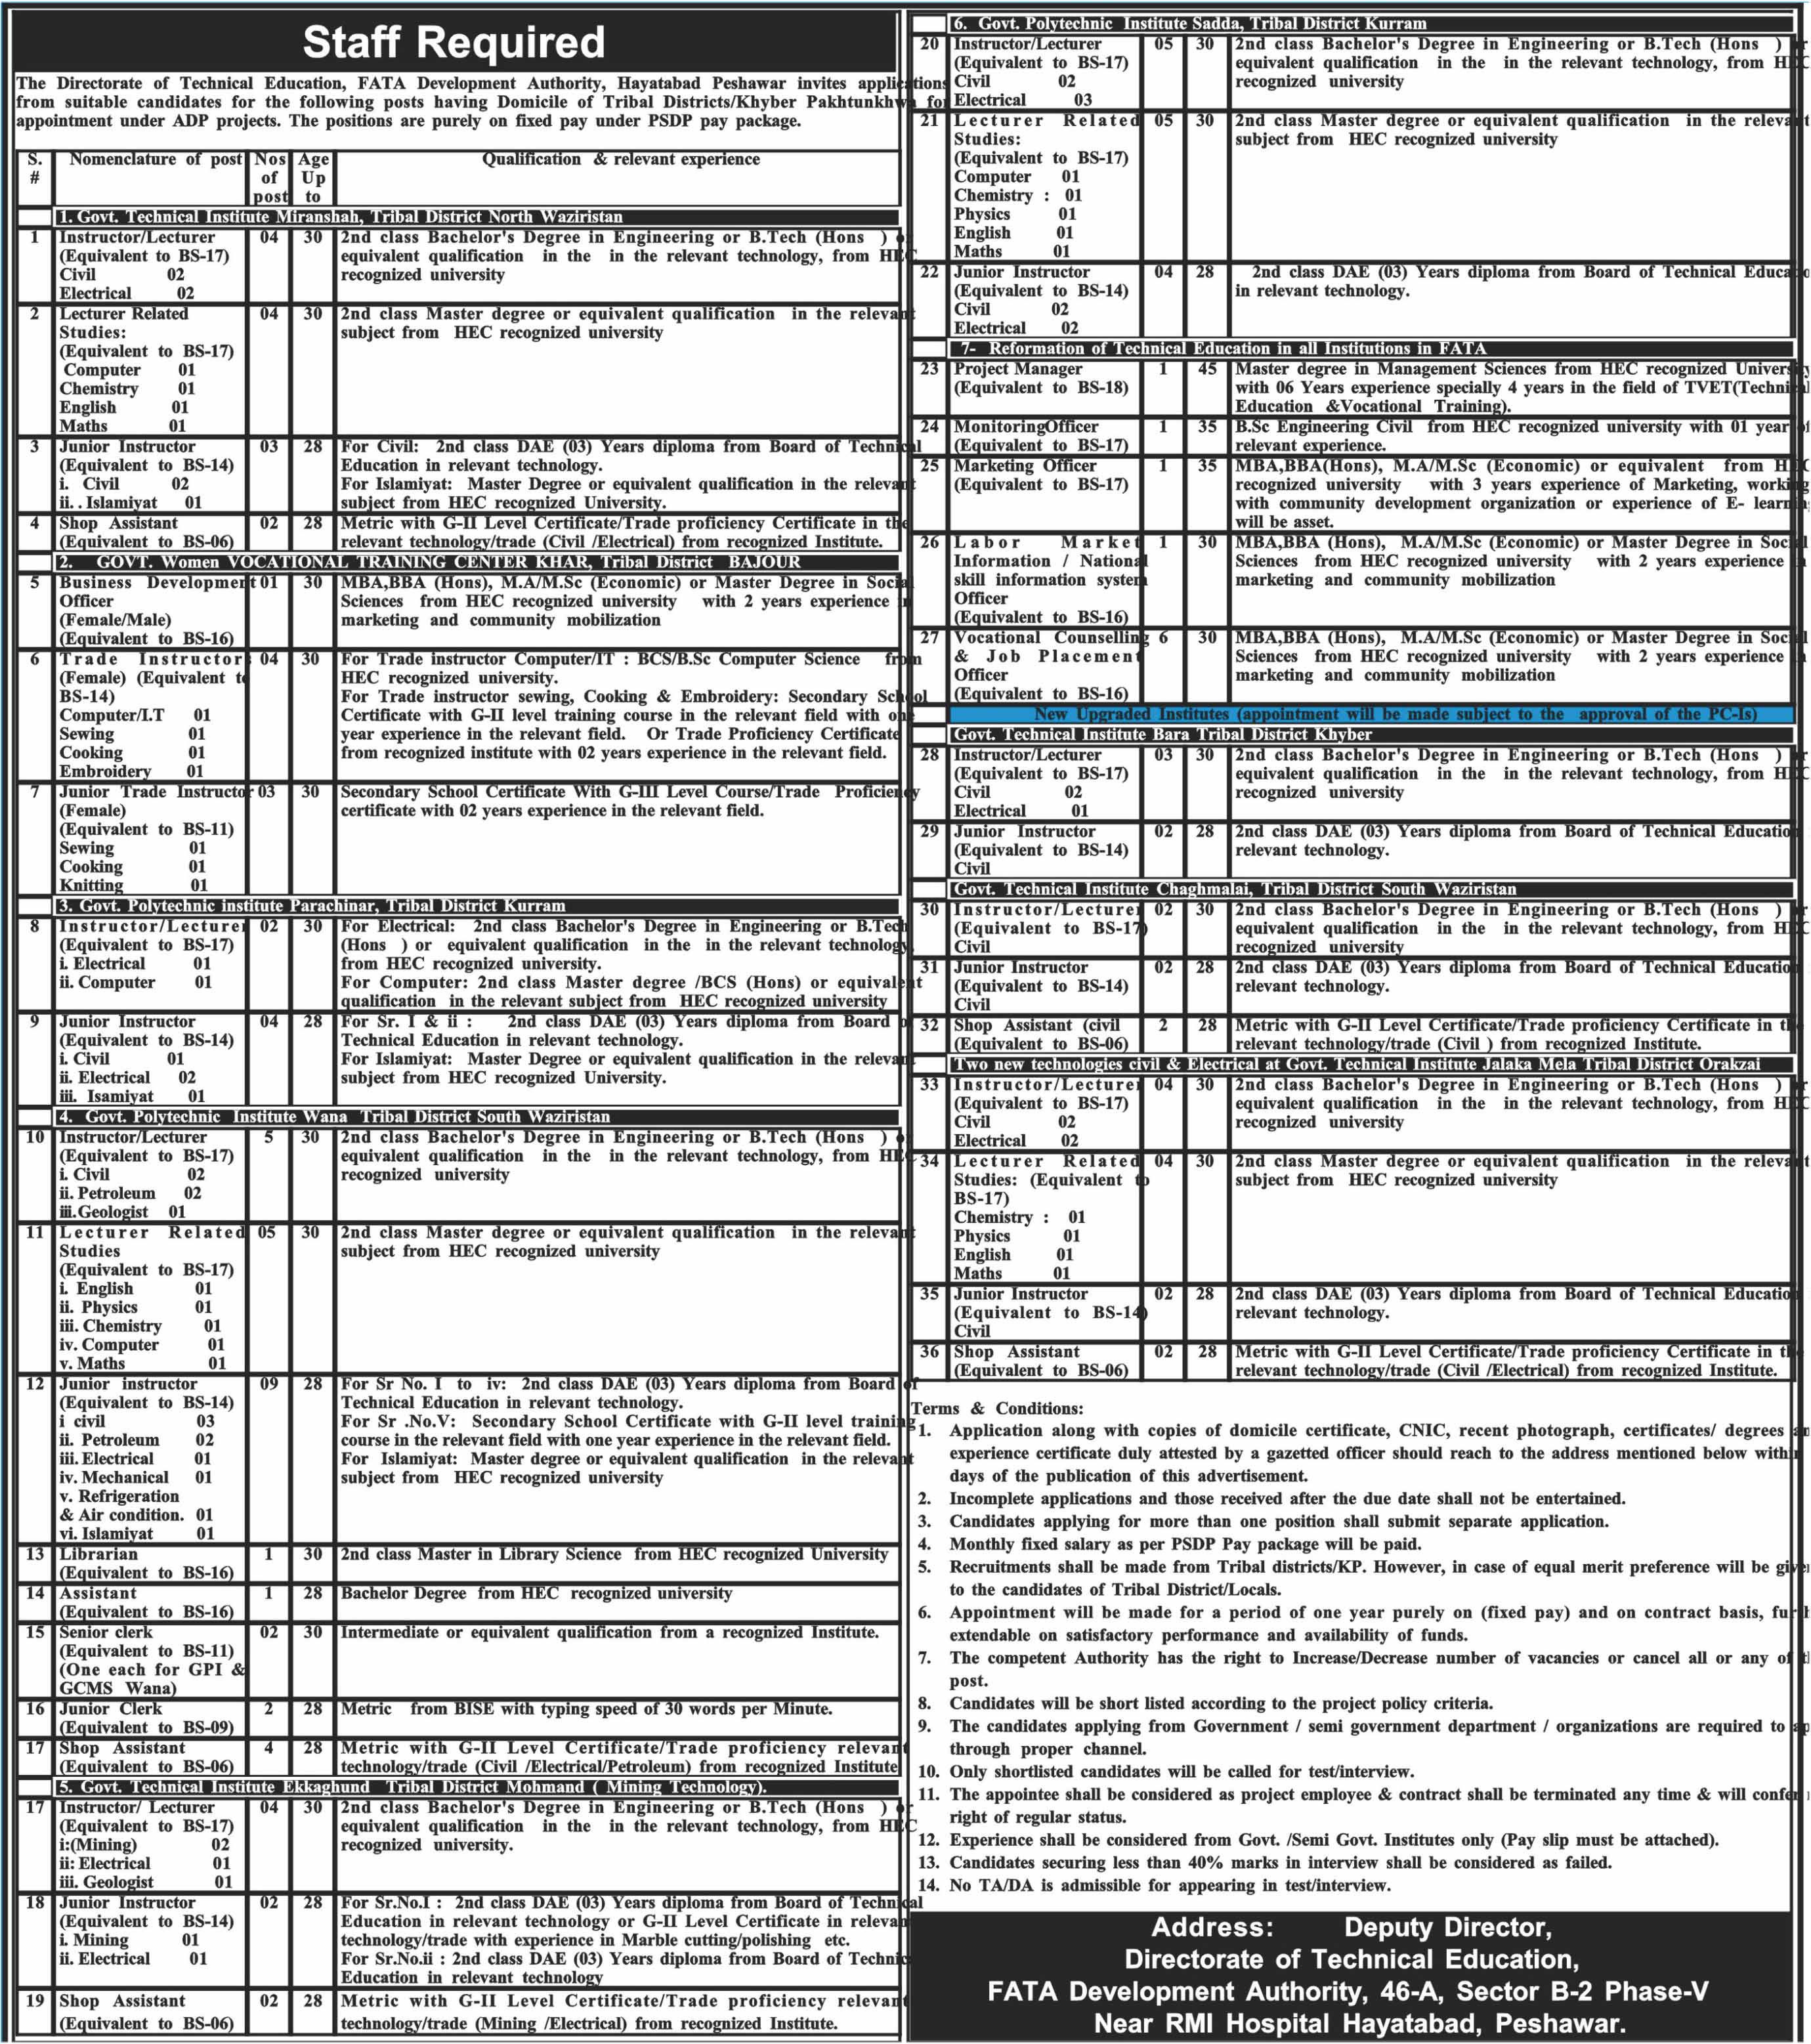 Directorate of Technical Education Kpk and Fata Latest Jobs 2018 -thumbnail